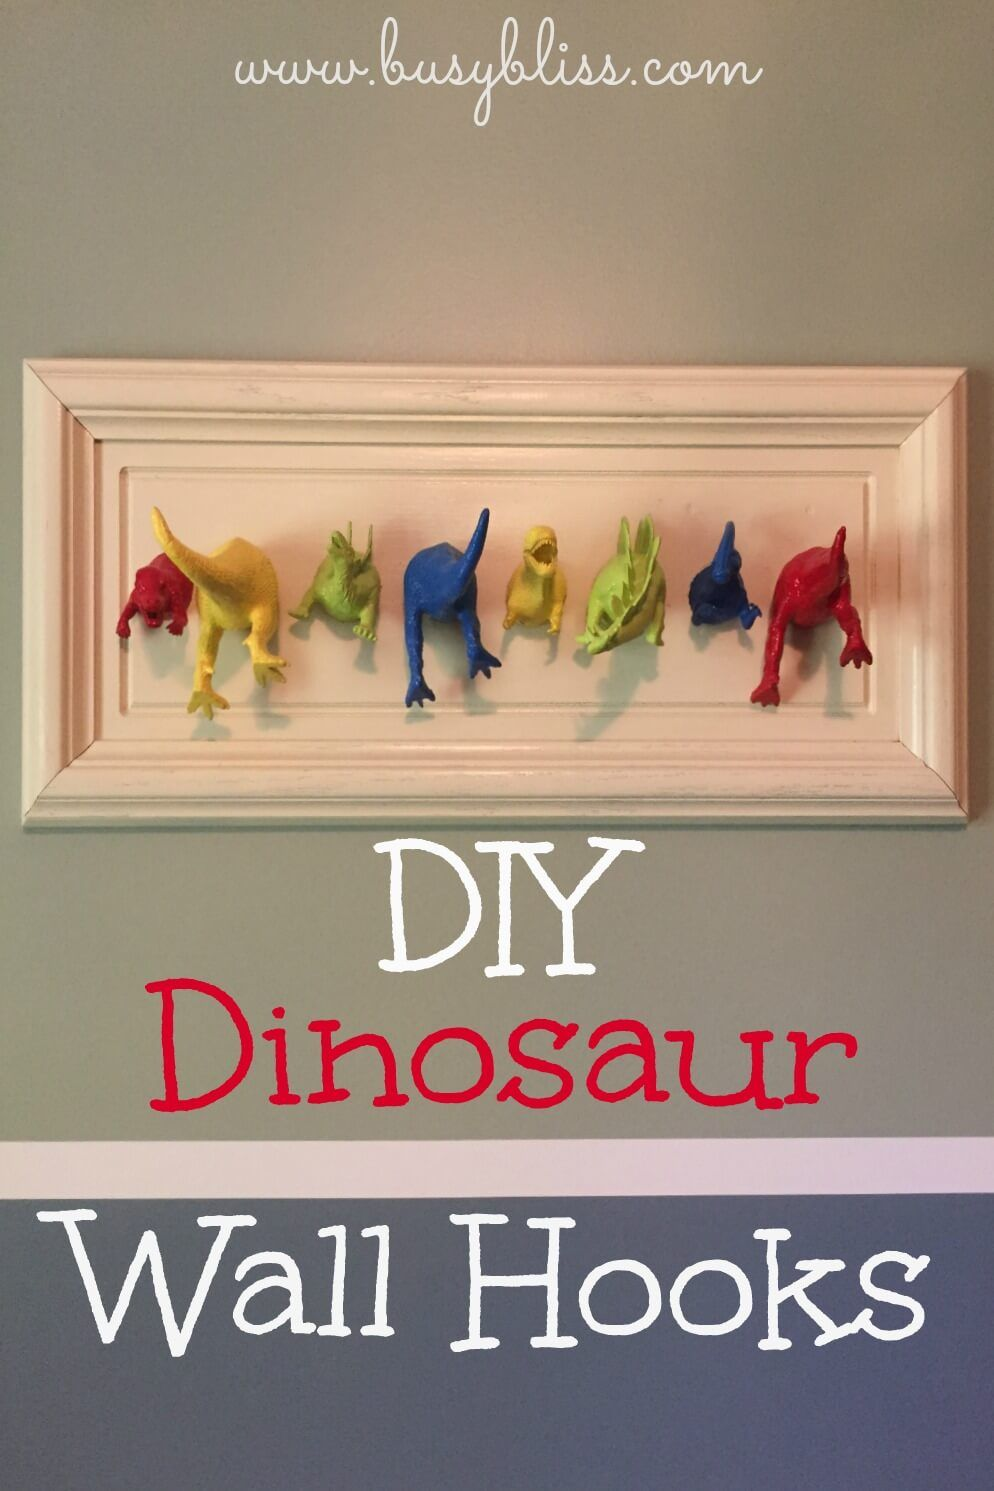 DIY Dinosaur Wall Hooks - Busy Bliss